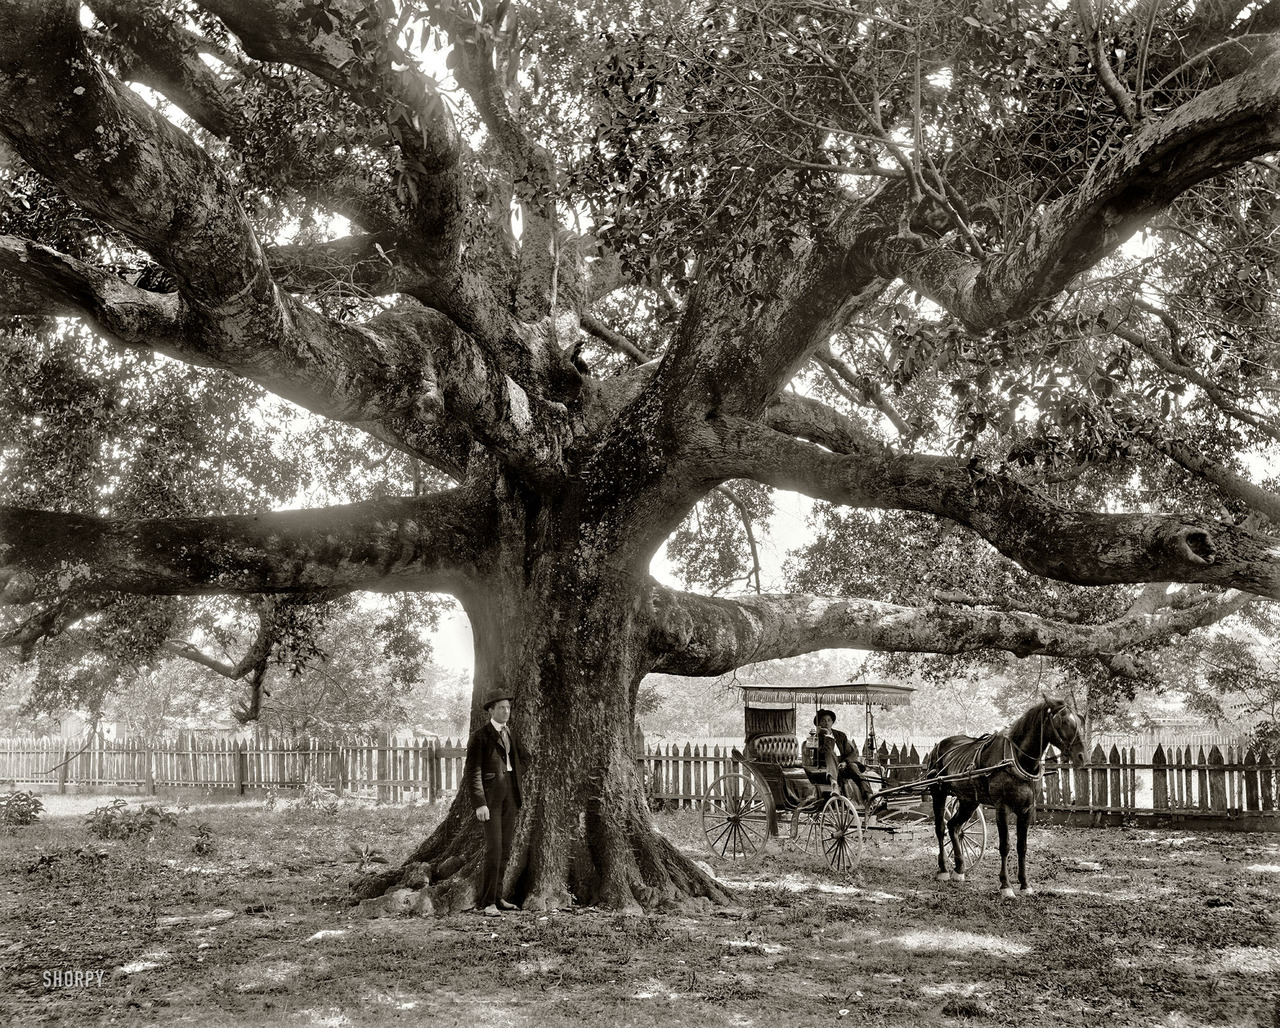 The Mammoth Oak, c. 1900 (via via)